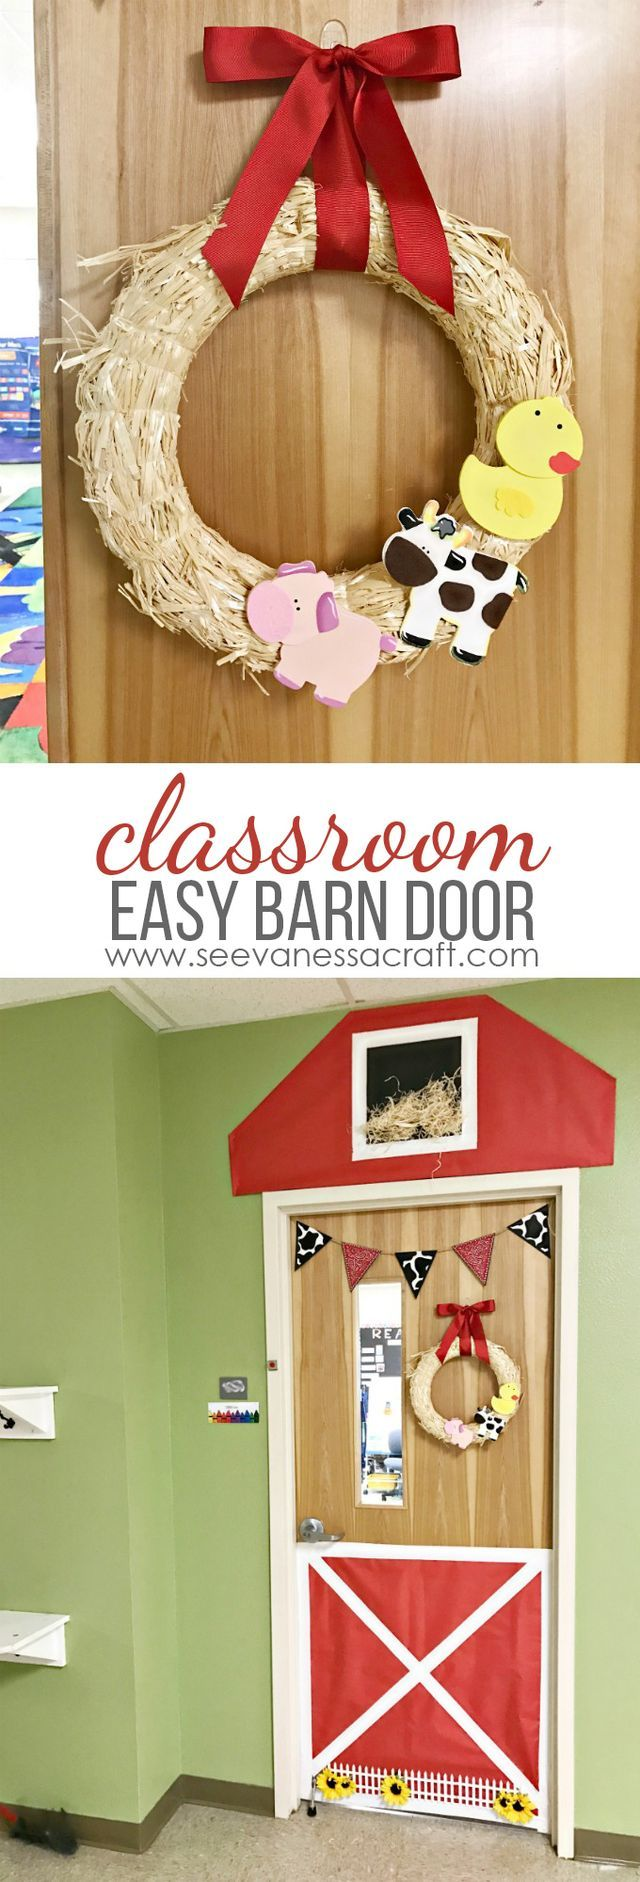 Best 25 preschool door ideas on pinterest preschool for Farm door ideas